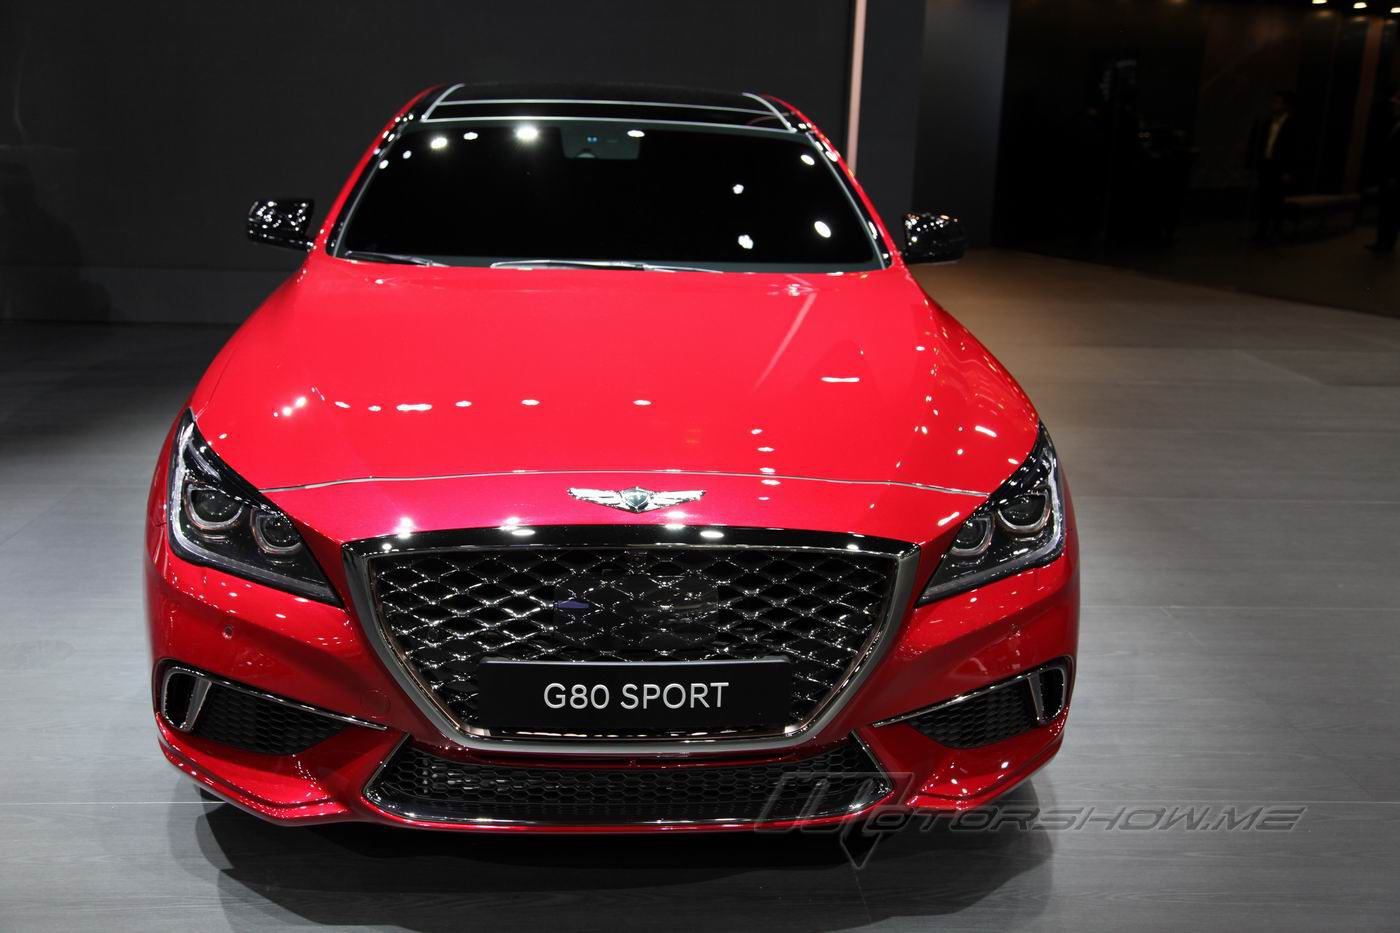 2016 Genesis G80 Sport Powered by a 370 hp 3.3-litre Twin-Turbo Engine